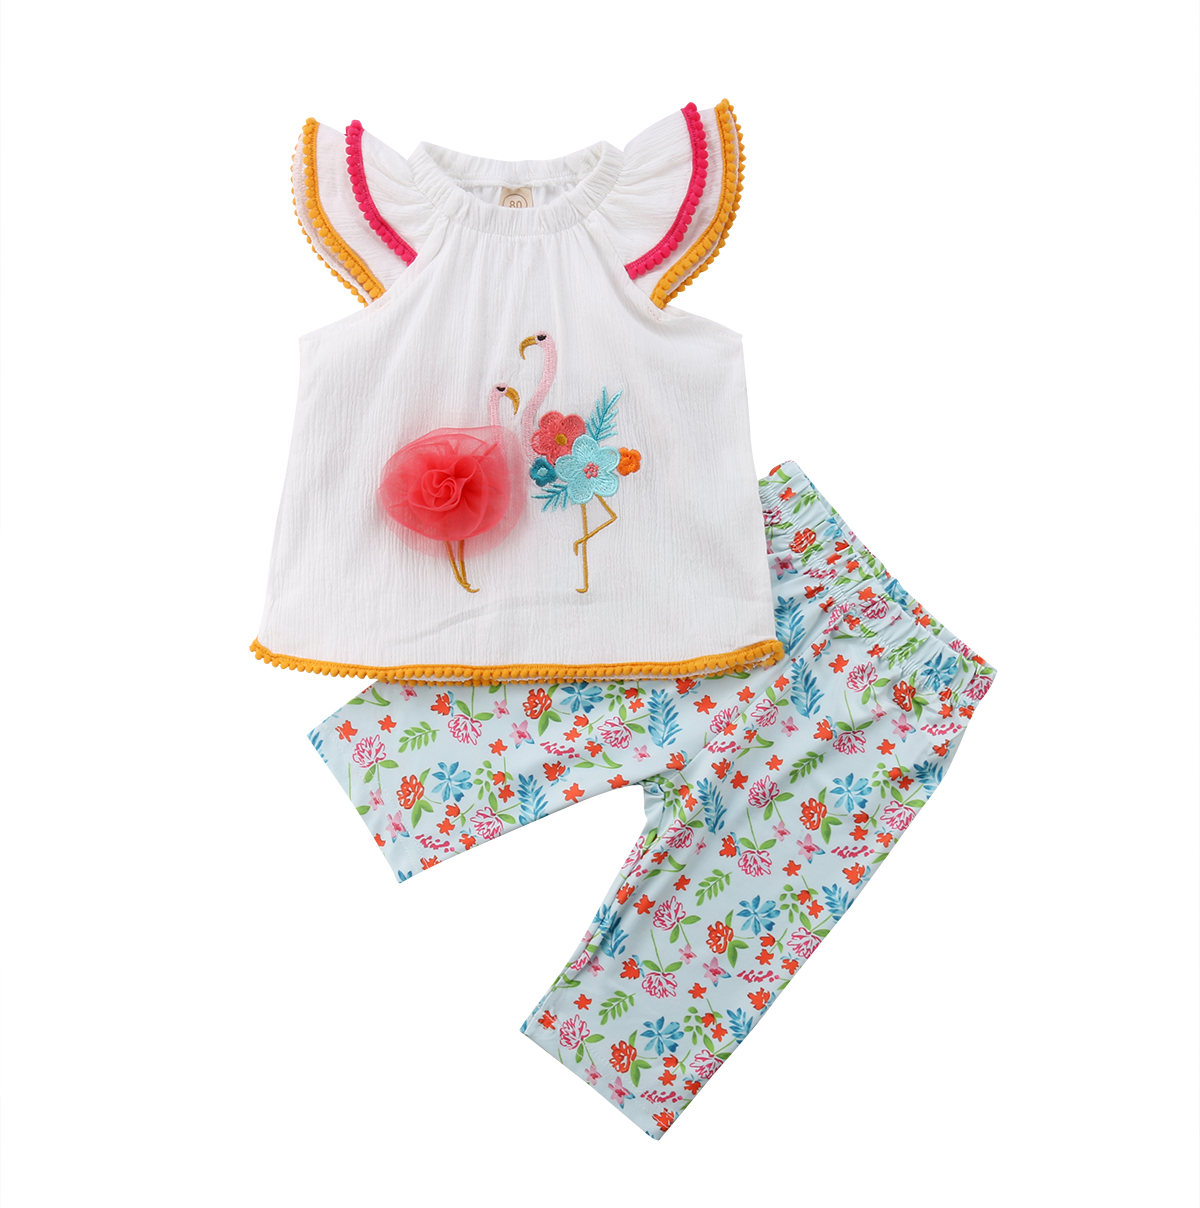 Embroidery Flamingo Kid Baby Girl Clothes Set Tops Shirts+ Pants  Outfits Flower Girls Clothes Sets